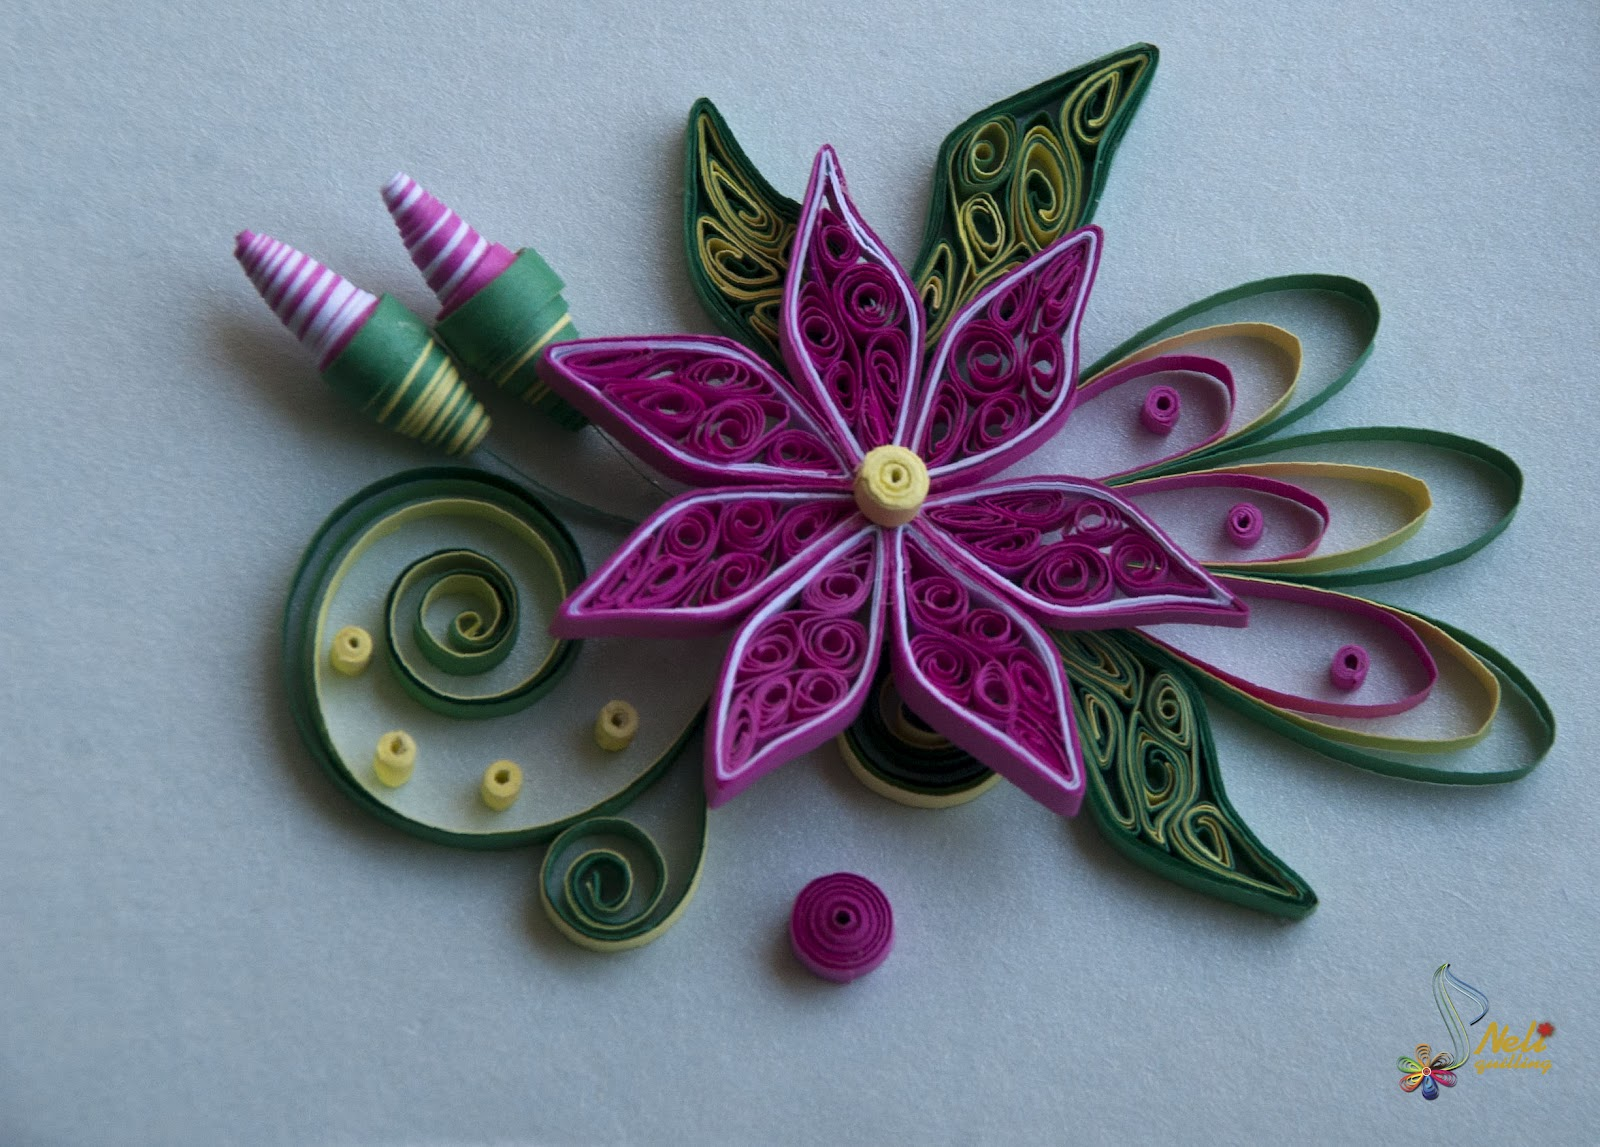 Quilling on pinterest paper quilling quilling art and for Paper quilling paper